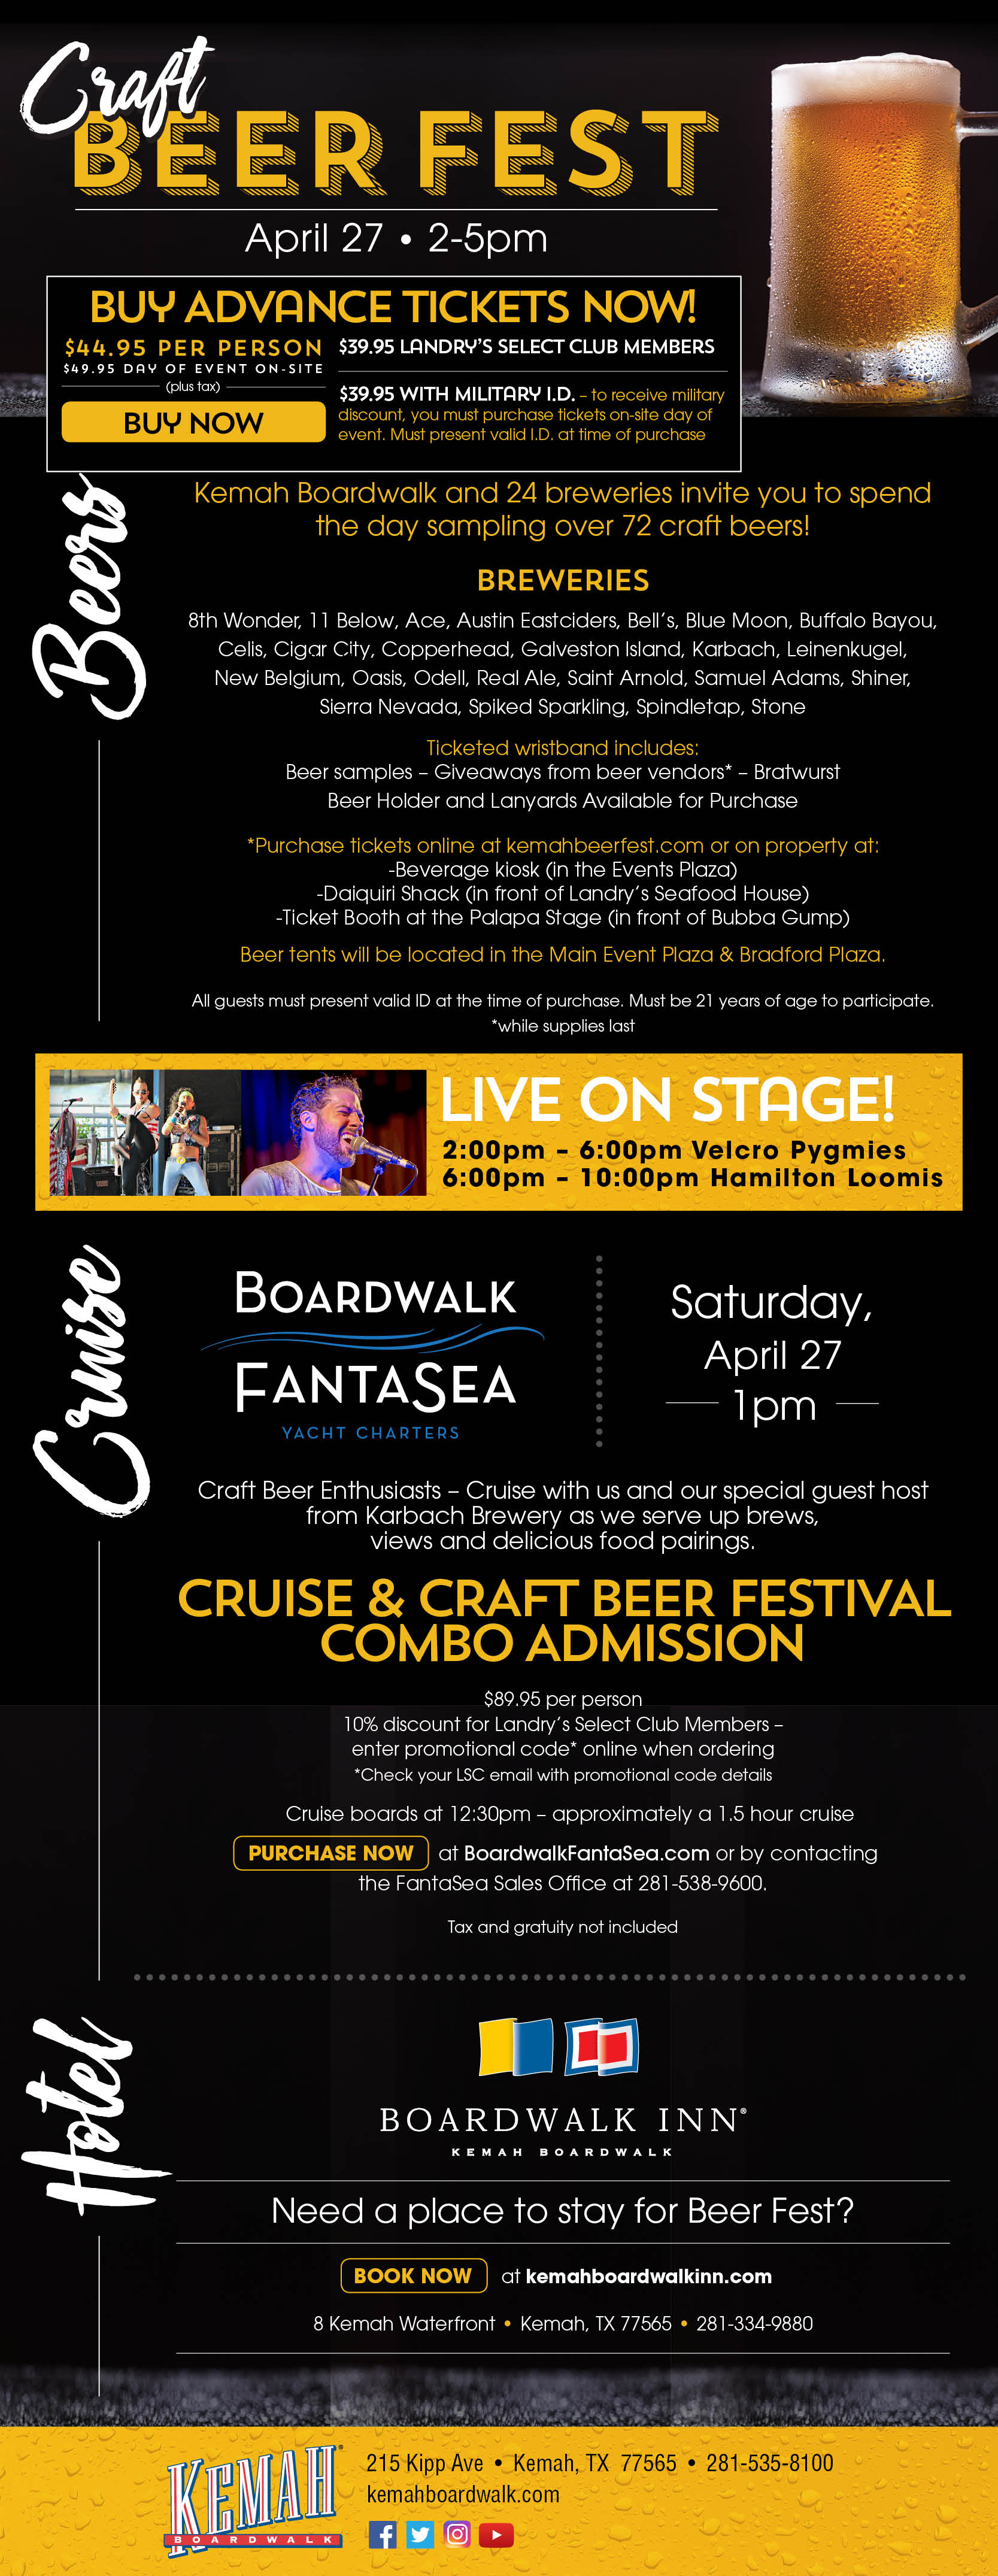 Kemah Boardwalk Craft Beer Fest will be help September 15, 2018 from 2pm-5pm. Buy your tickets now before they sell out!